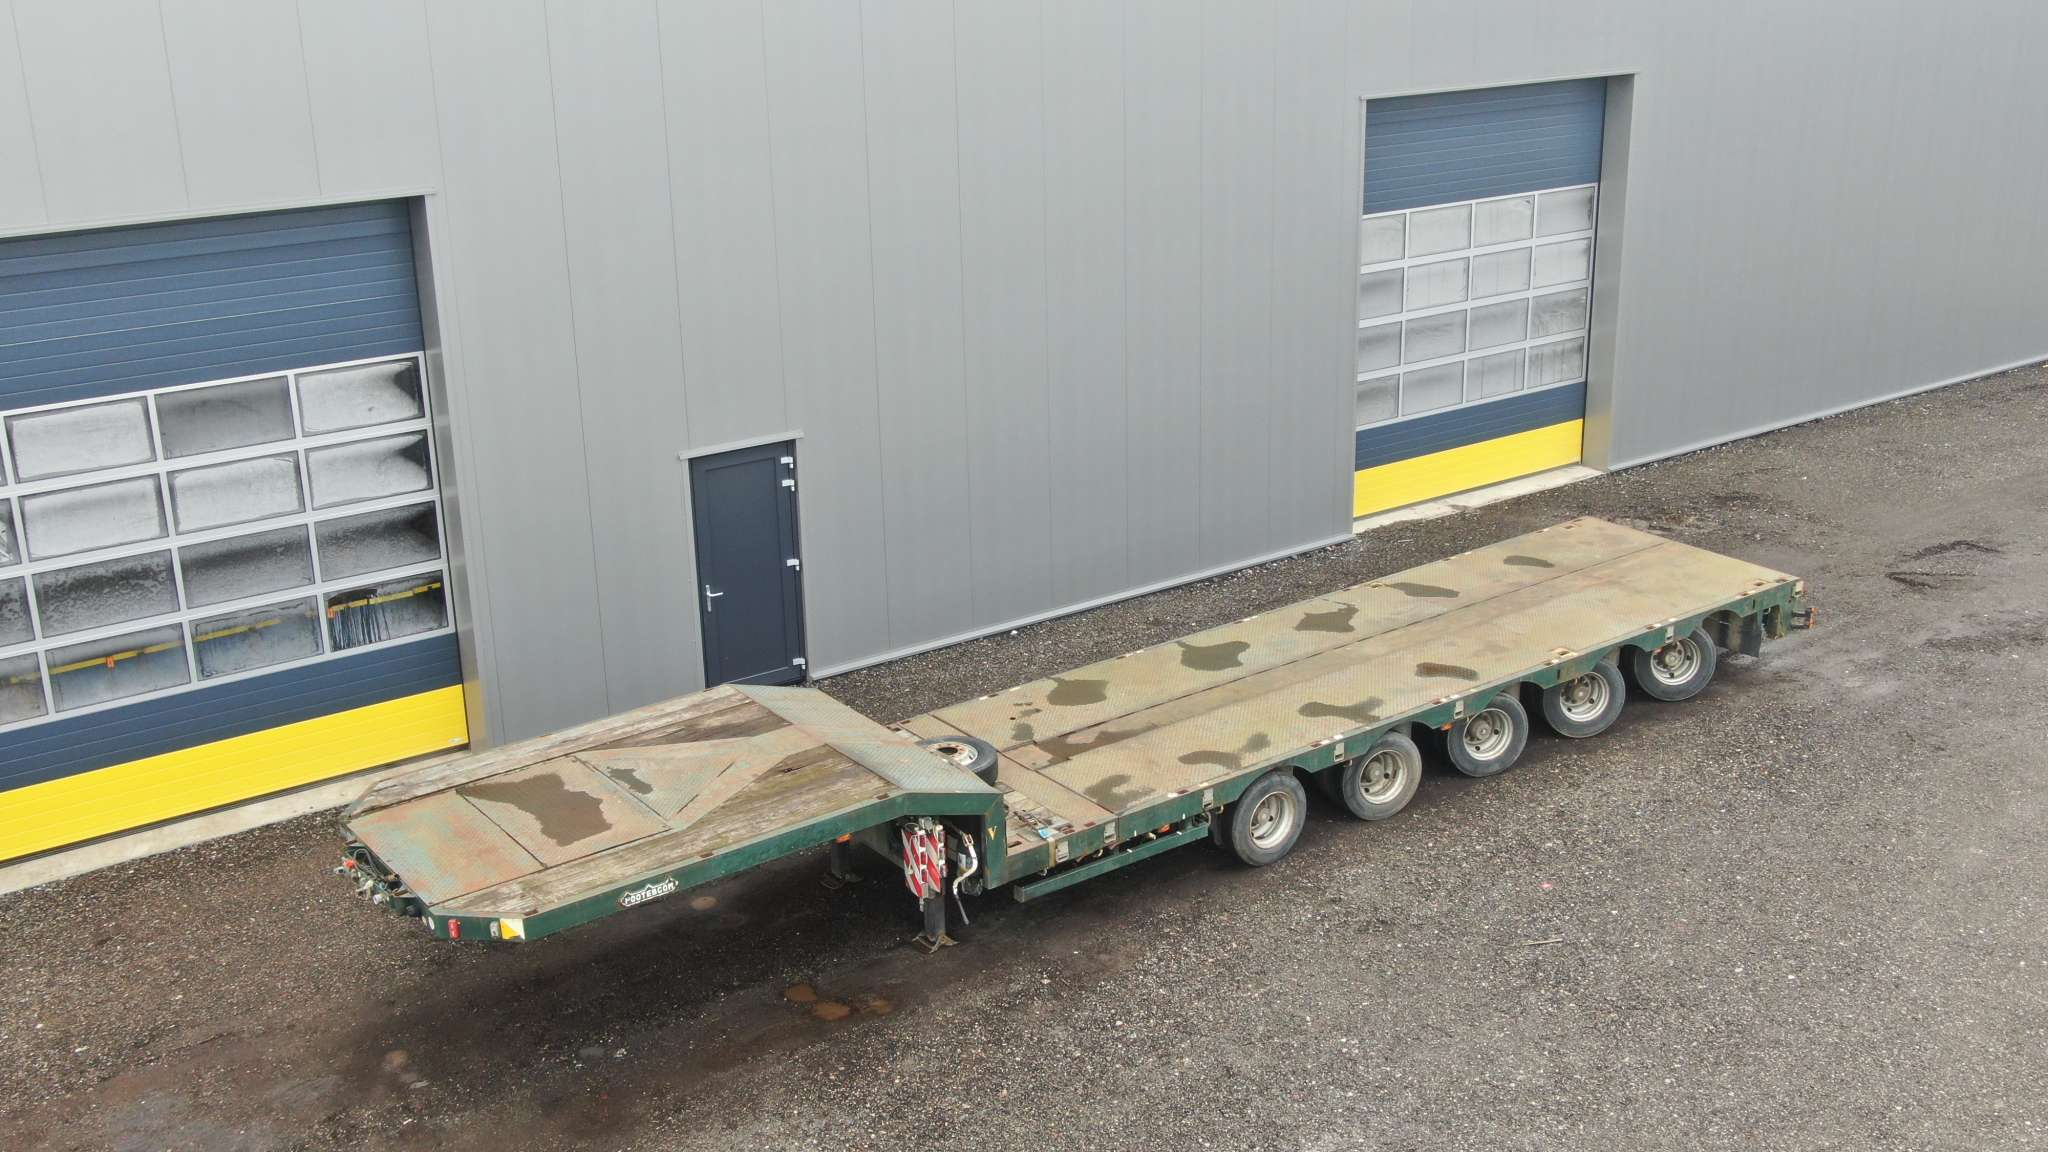 5 Axle semi lowbed | extendable till 15.6 m | loading height 830 mm | payload 43 t